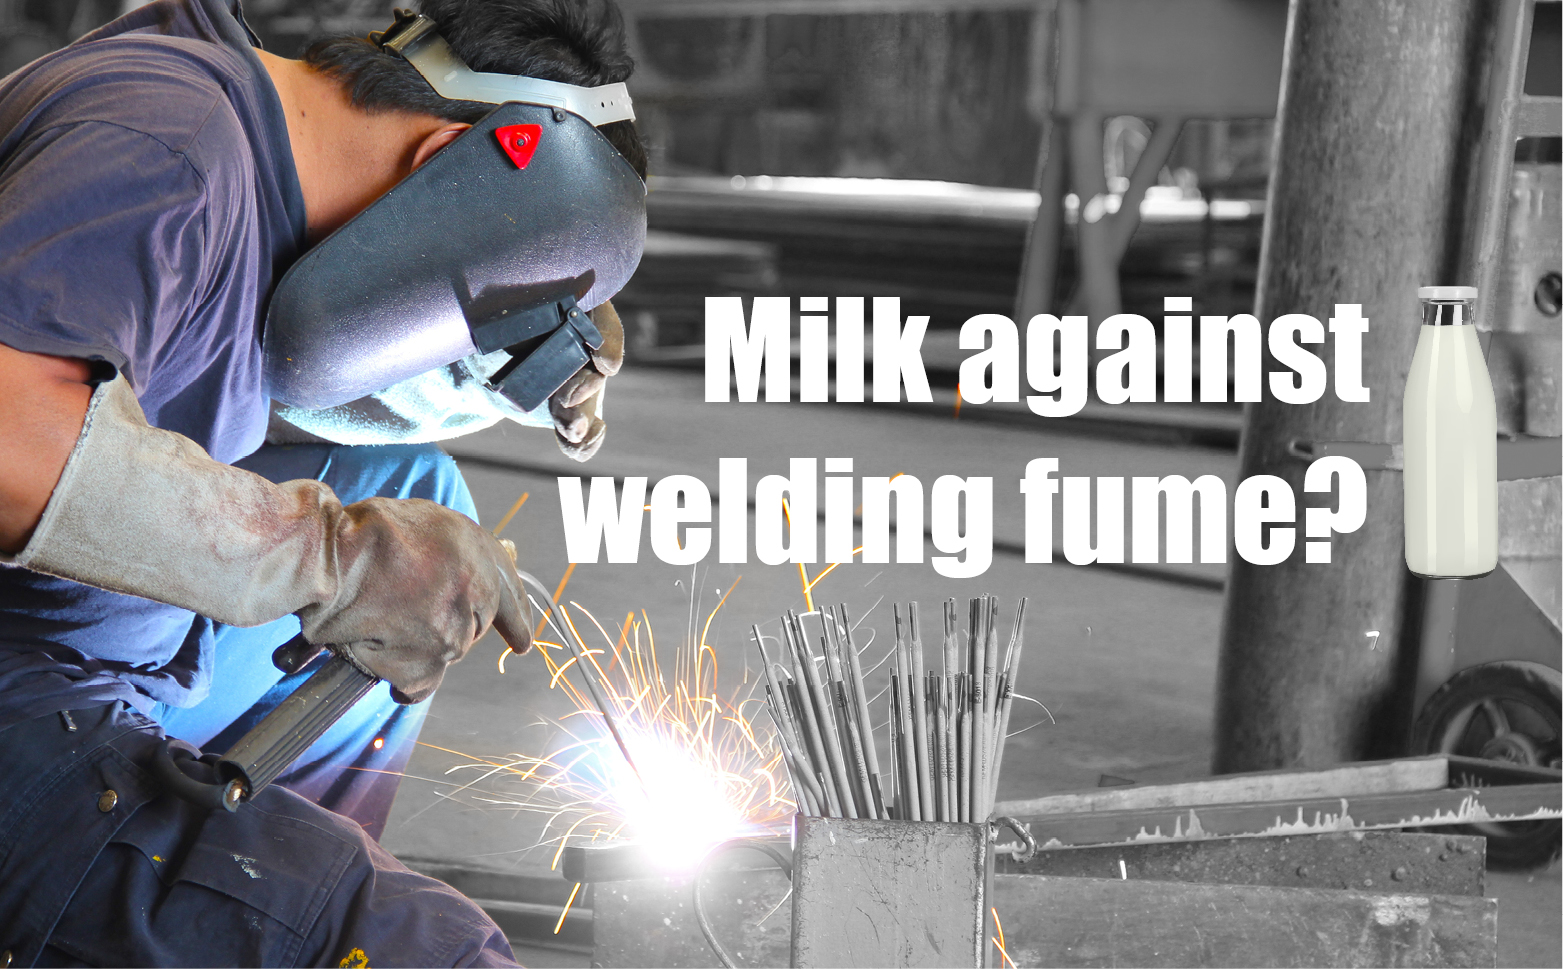 Milk against welding fumes: not much more than an old wives\' tale